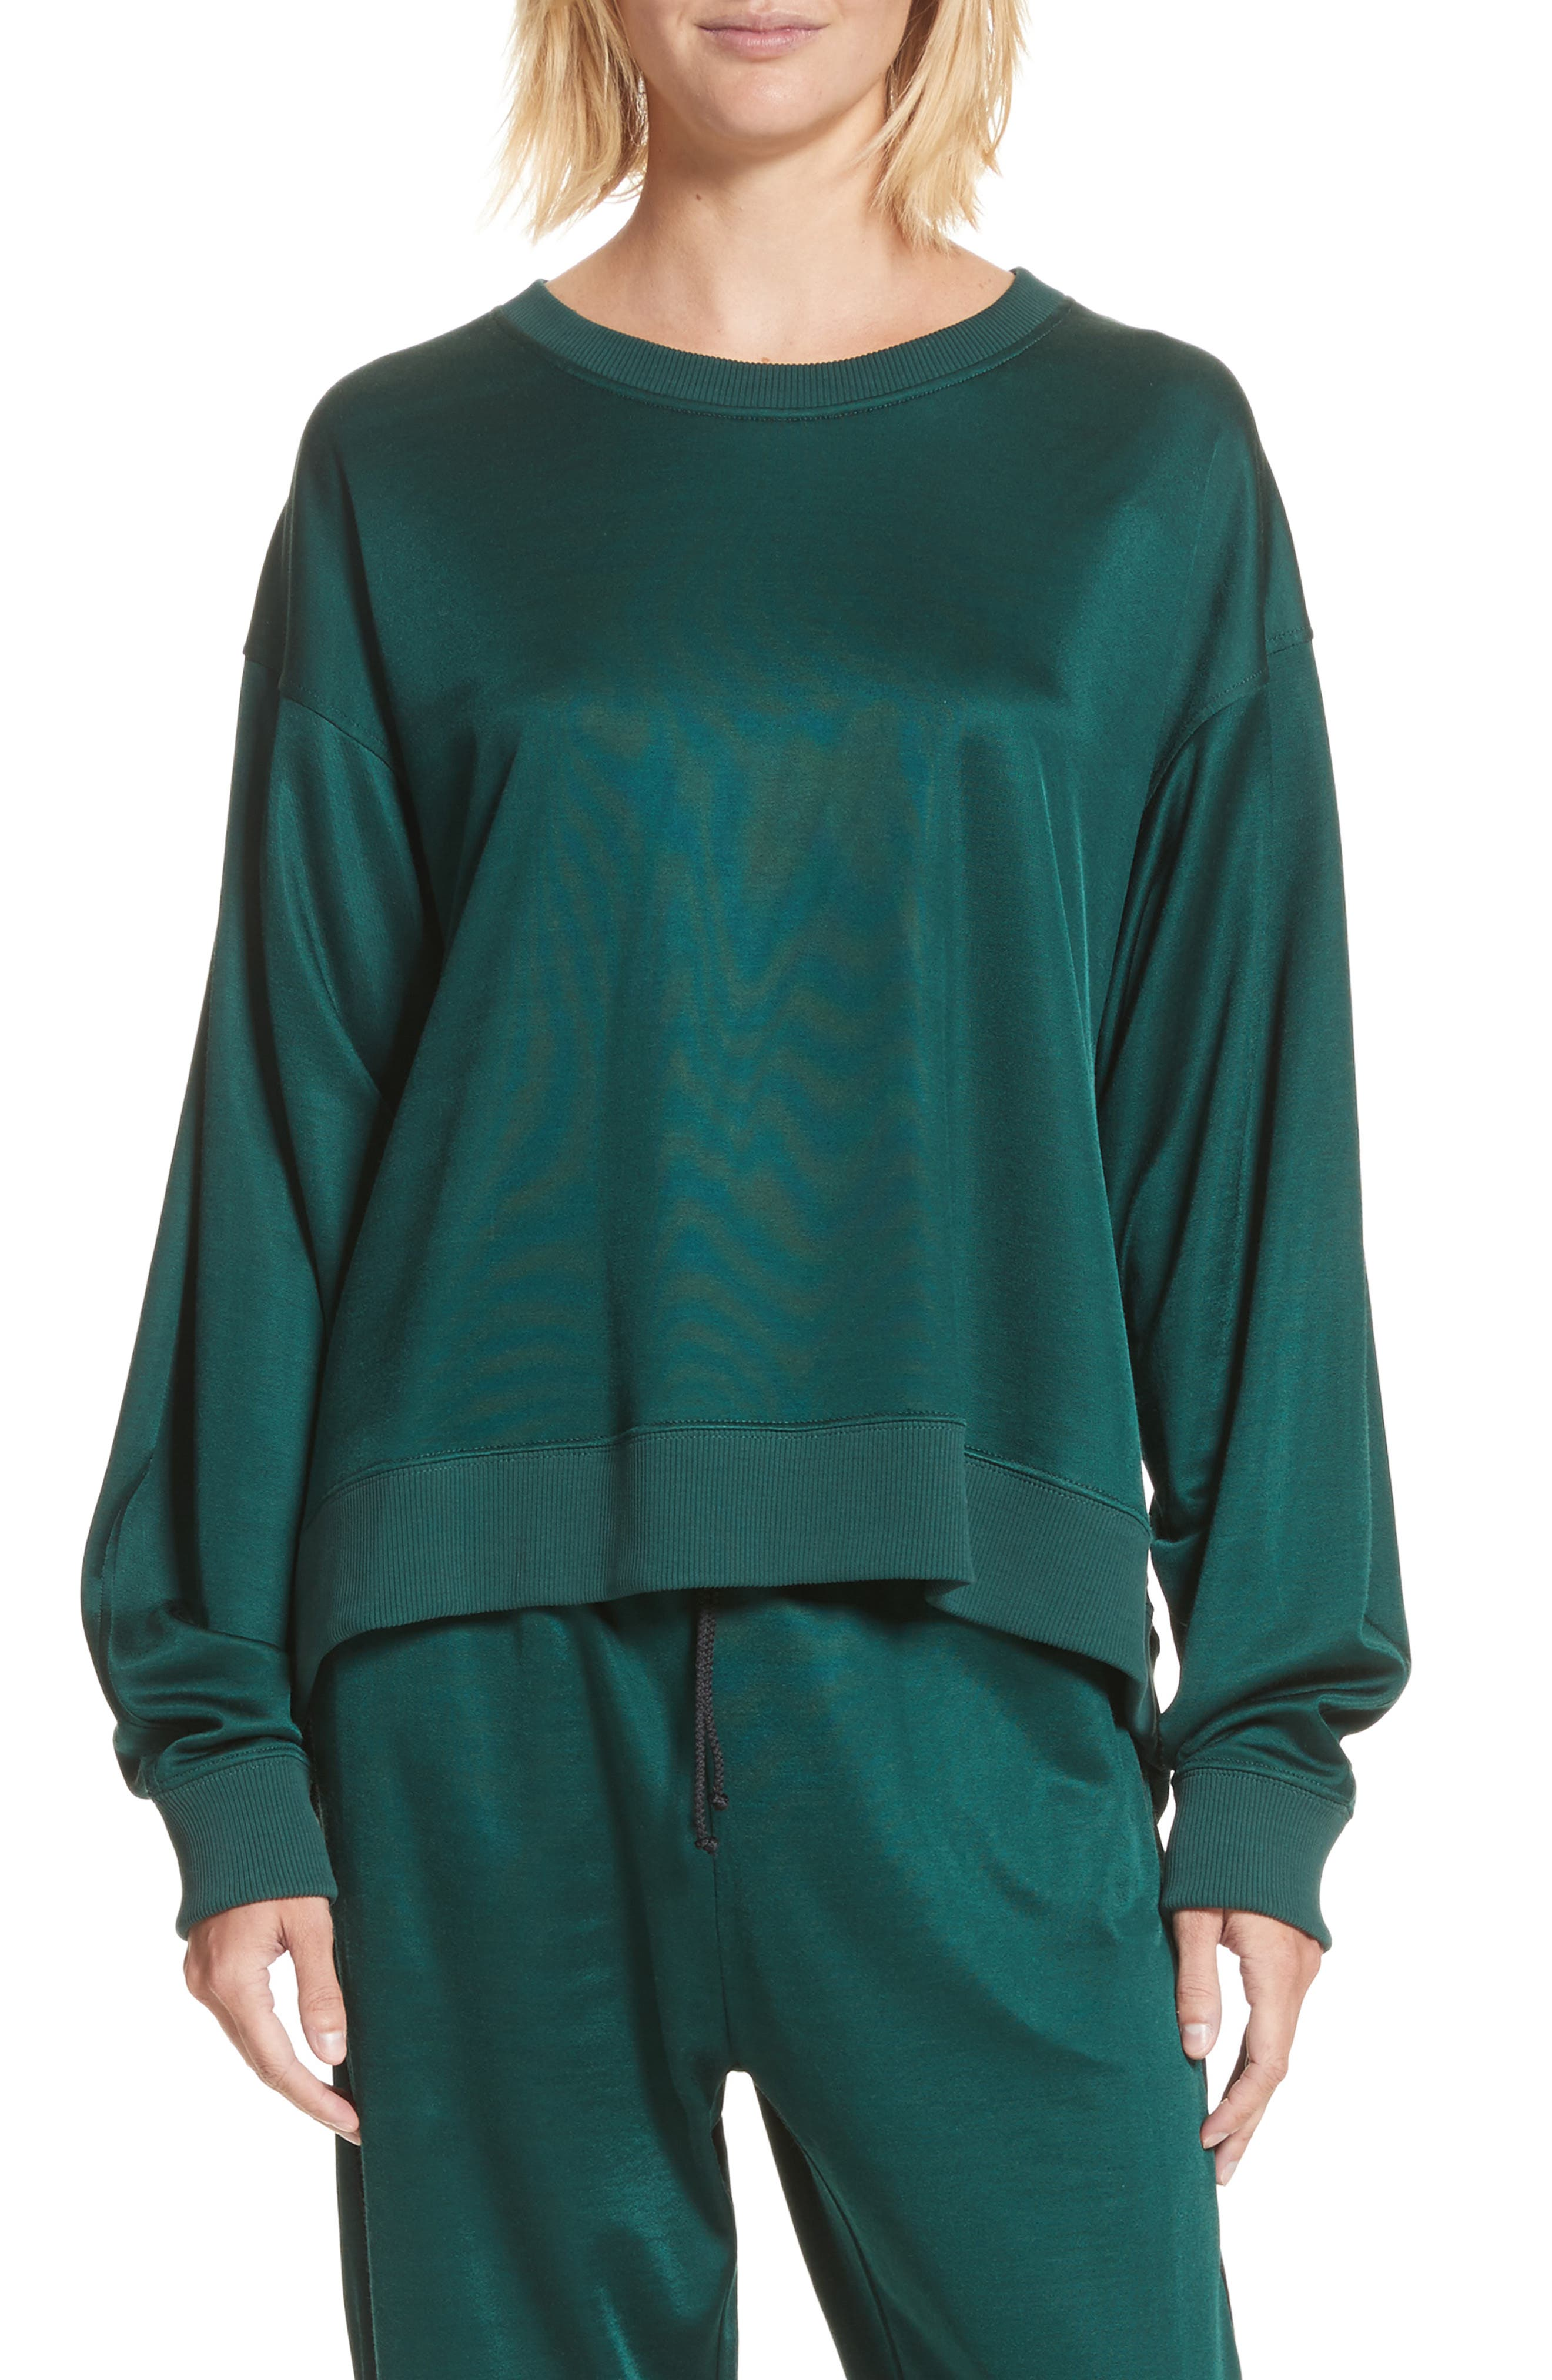 Track Suit Pullover,                         Main,                         color, Pine